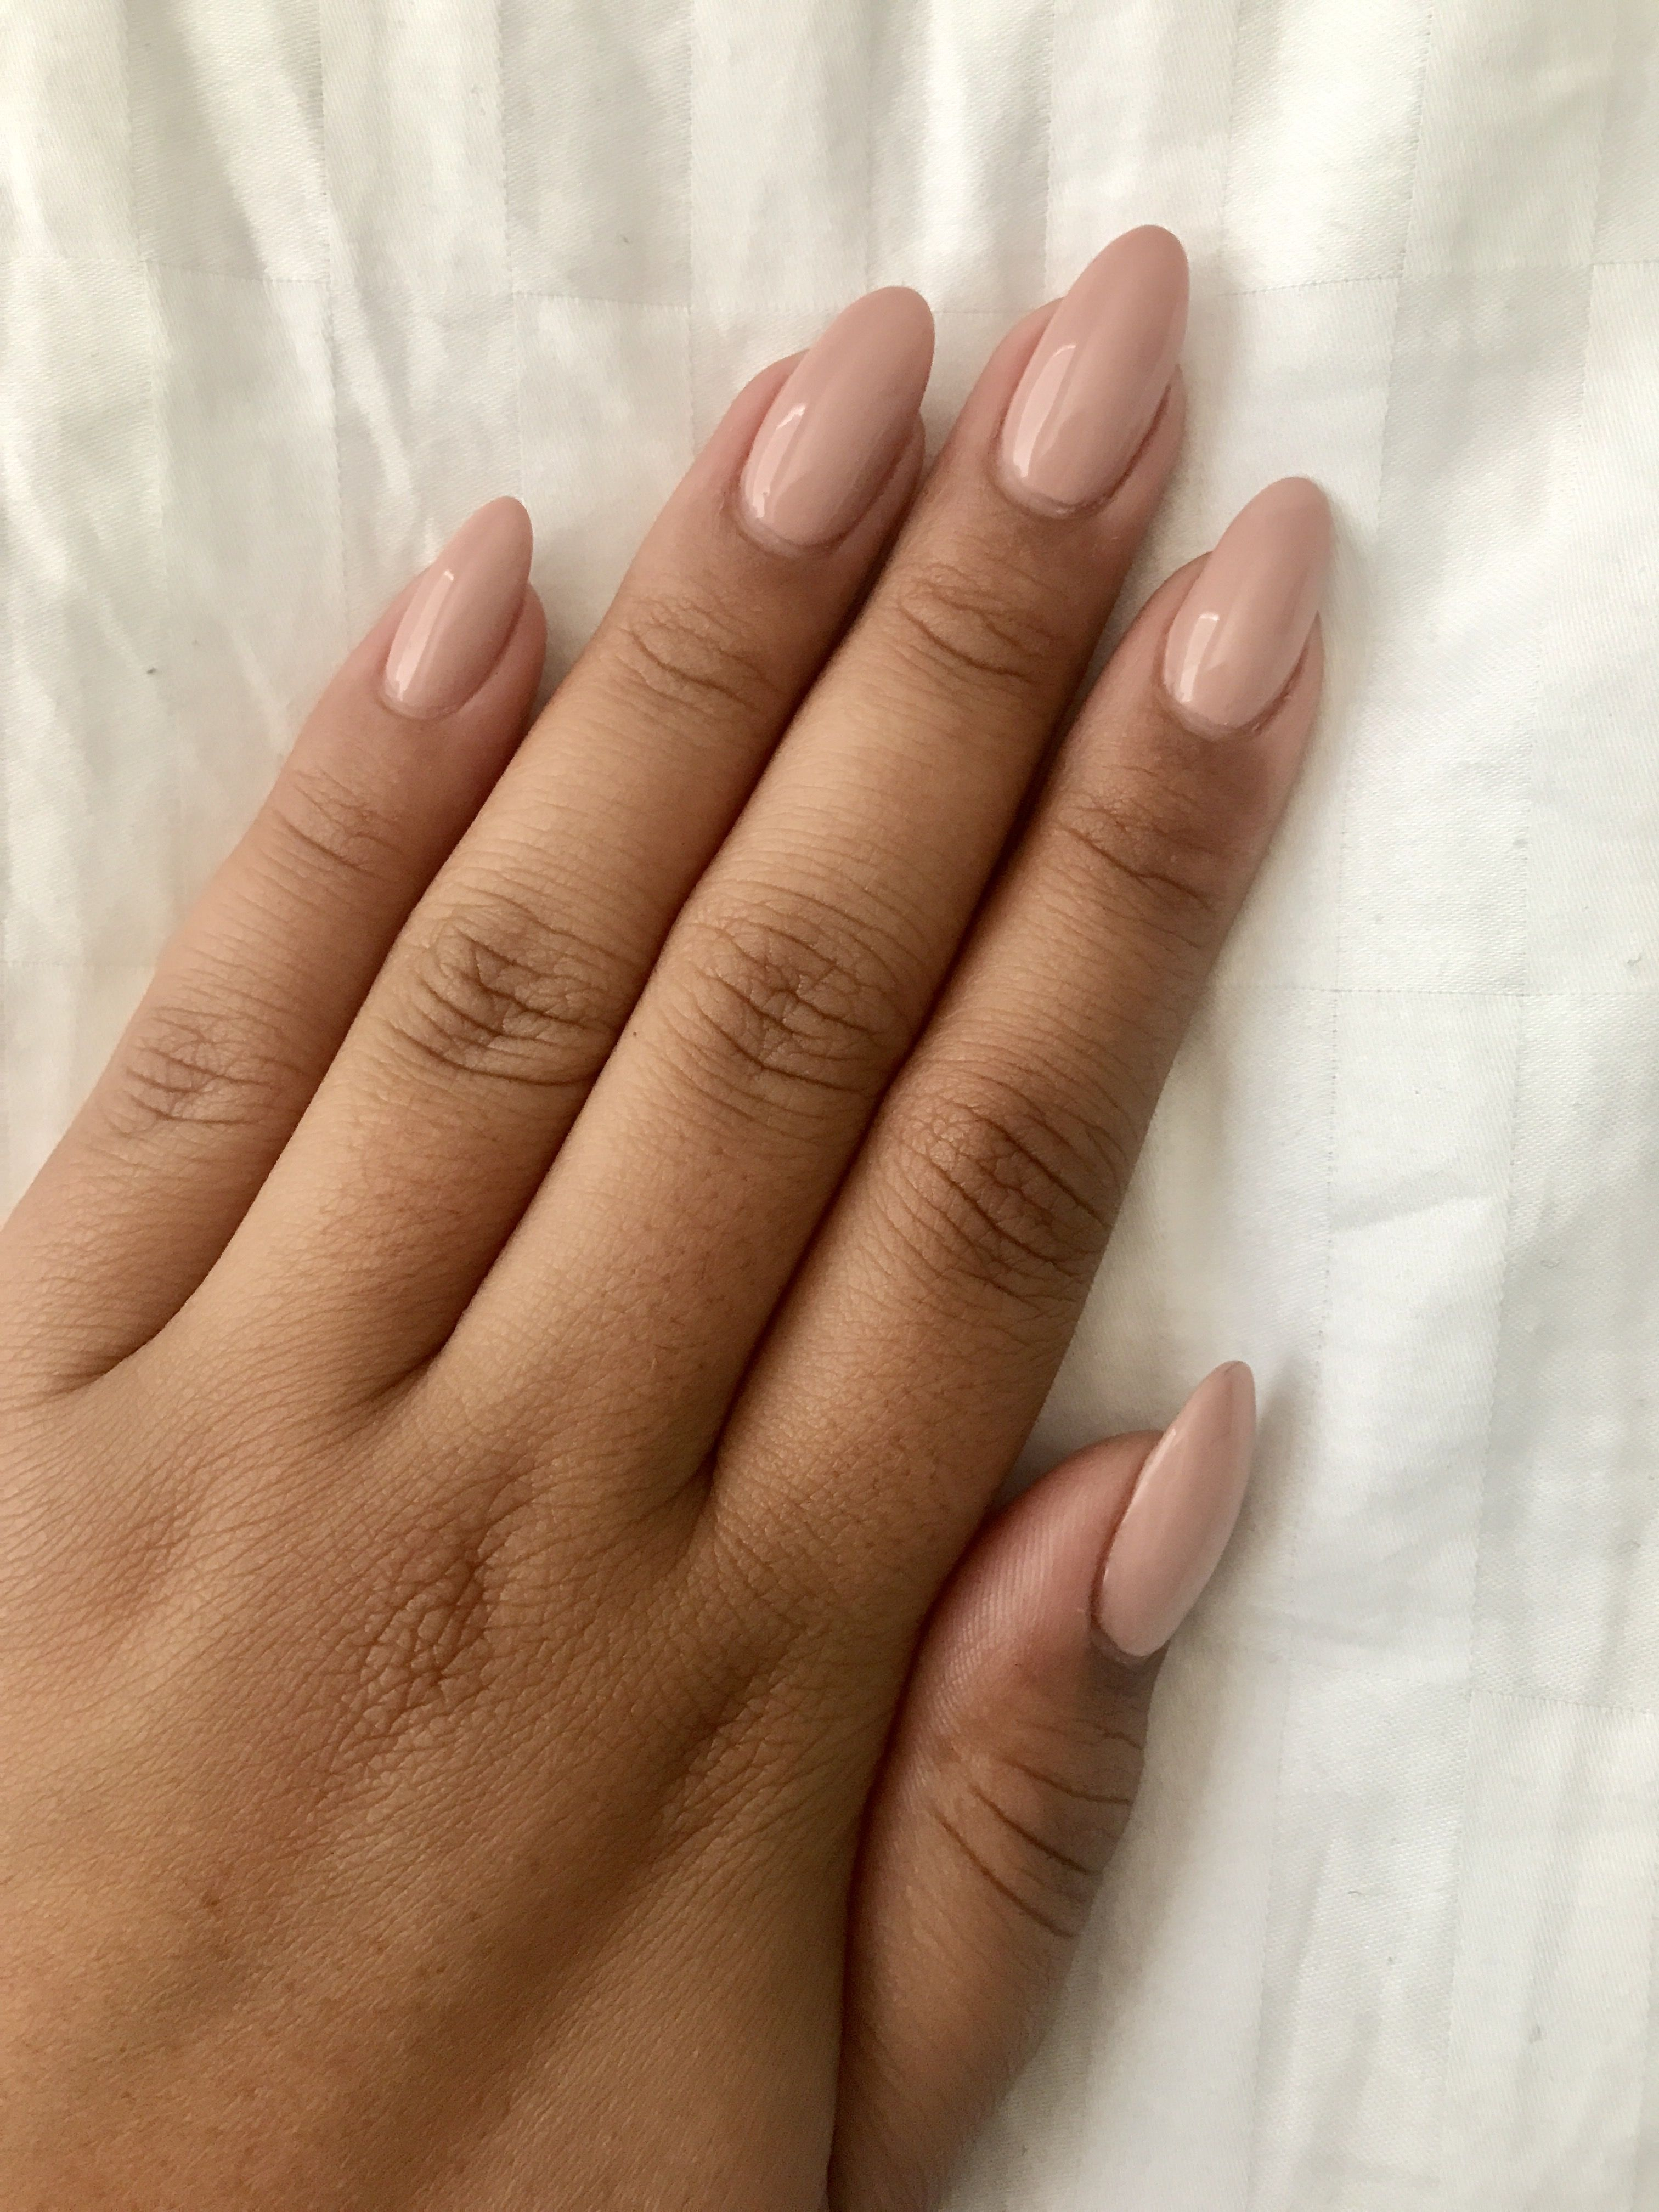 Nude nails | Nails | Pinterest | Nude nails, Nude and Nail inspo